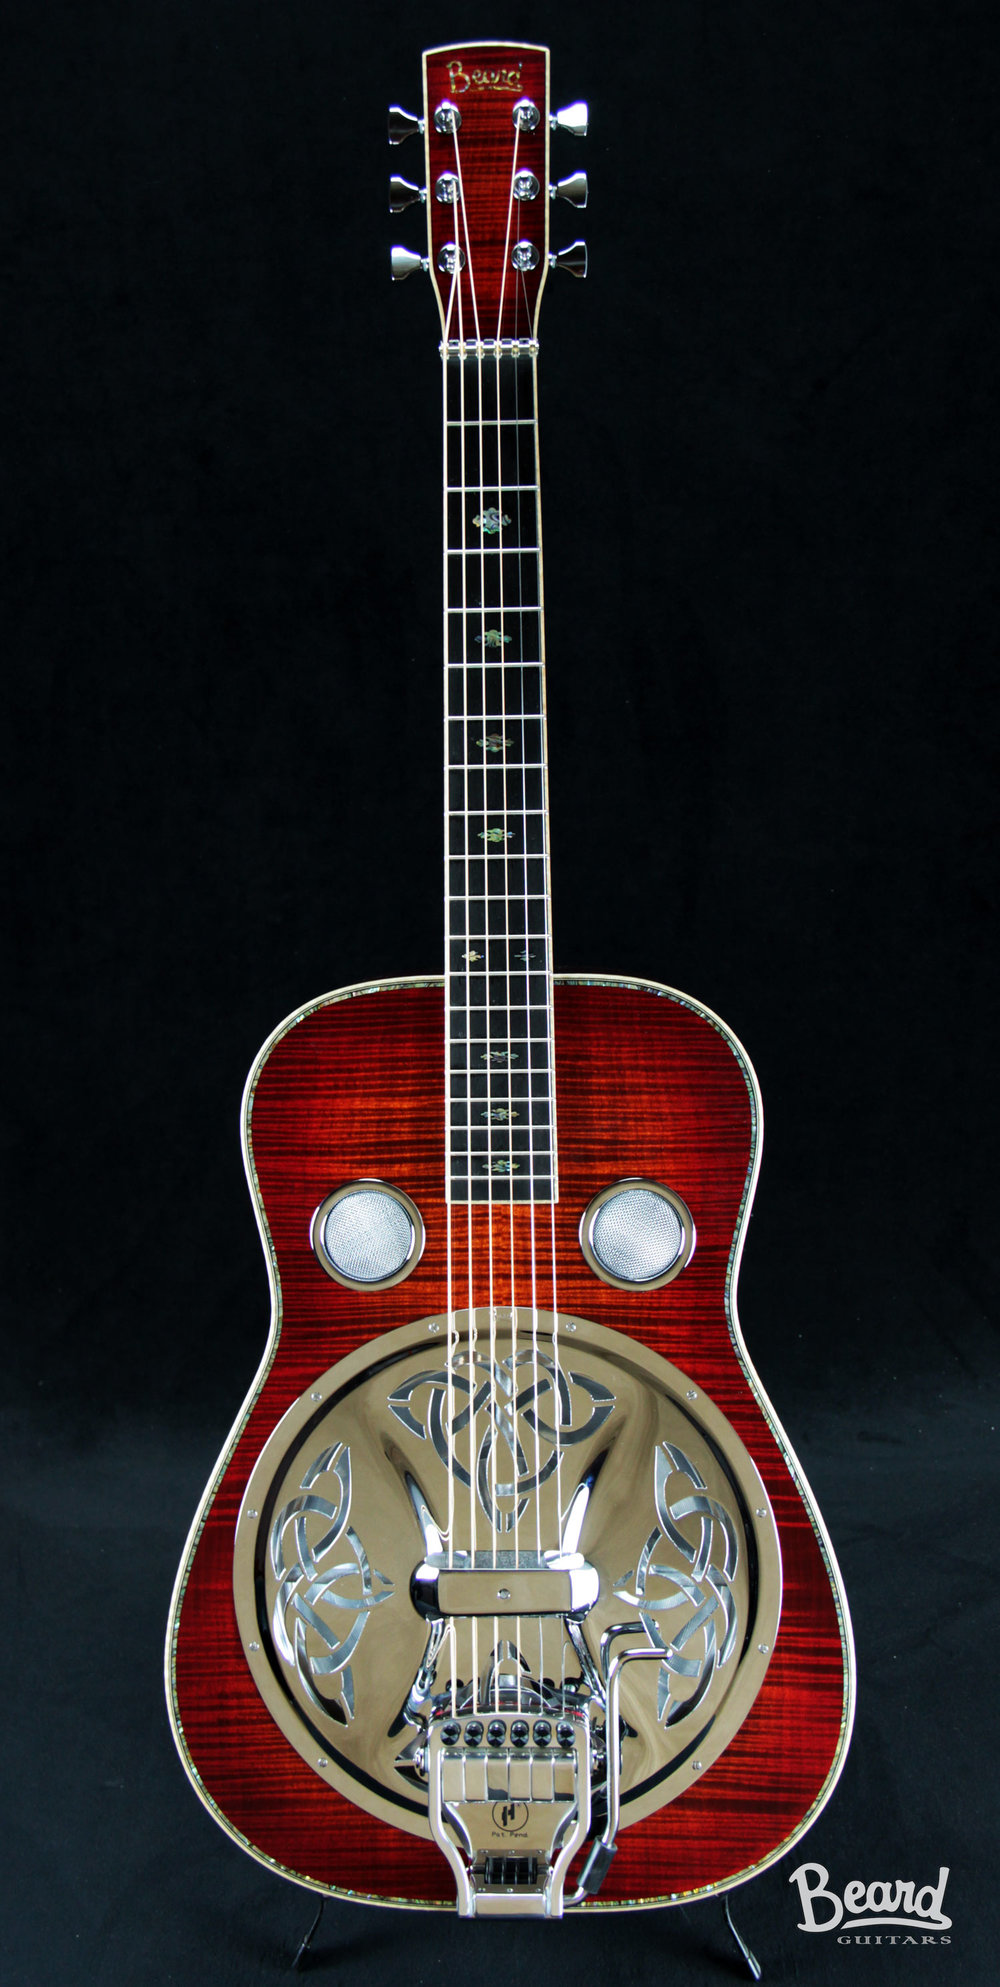 E-Model-Maple-Cherry-Fire-Burst-inlay-with-hipsot-FF.jpg